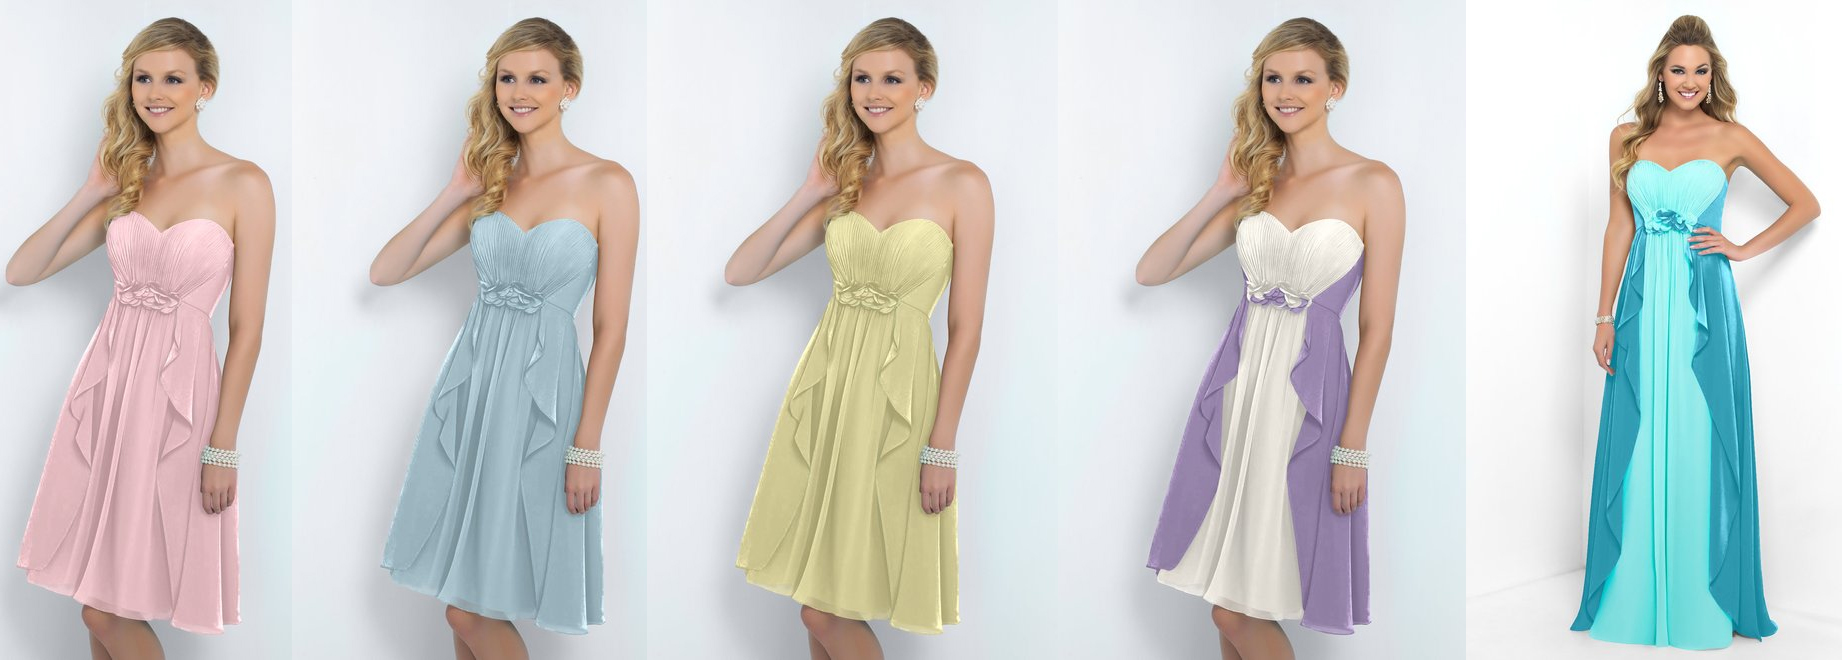 Four bridesmaid dress trends for 2015 alexia designs uk mismatch bridesmaid trend ombrellifo Choice Image